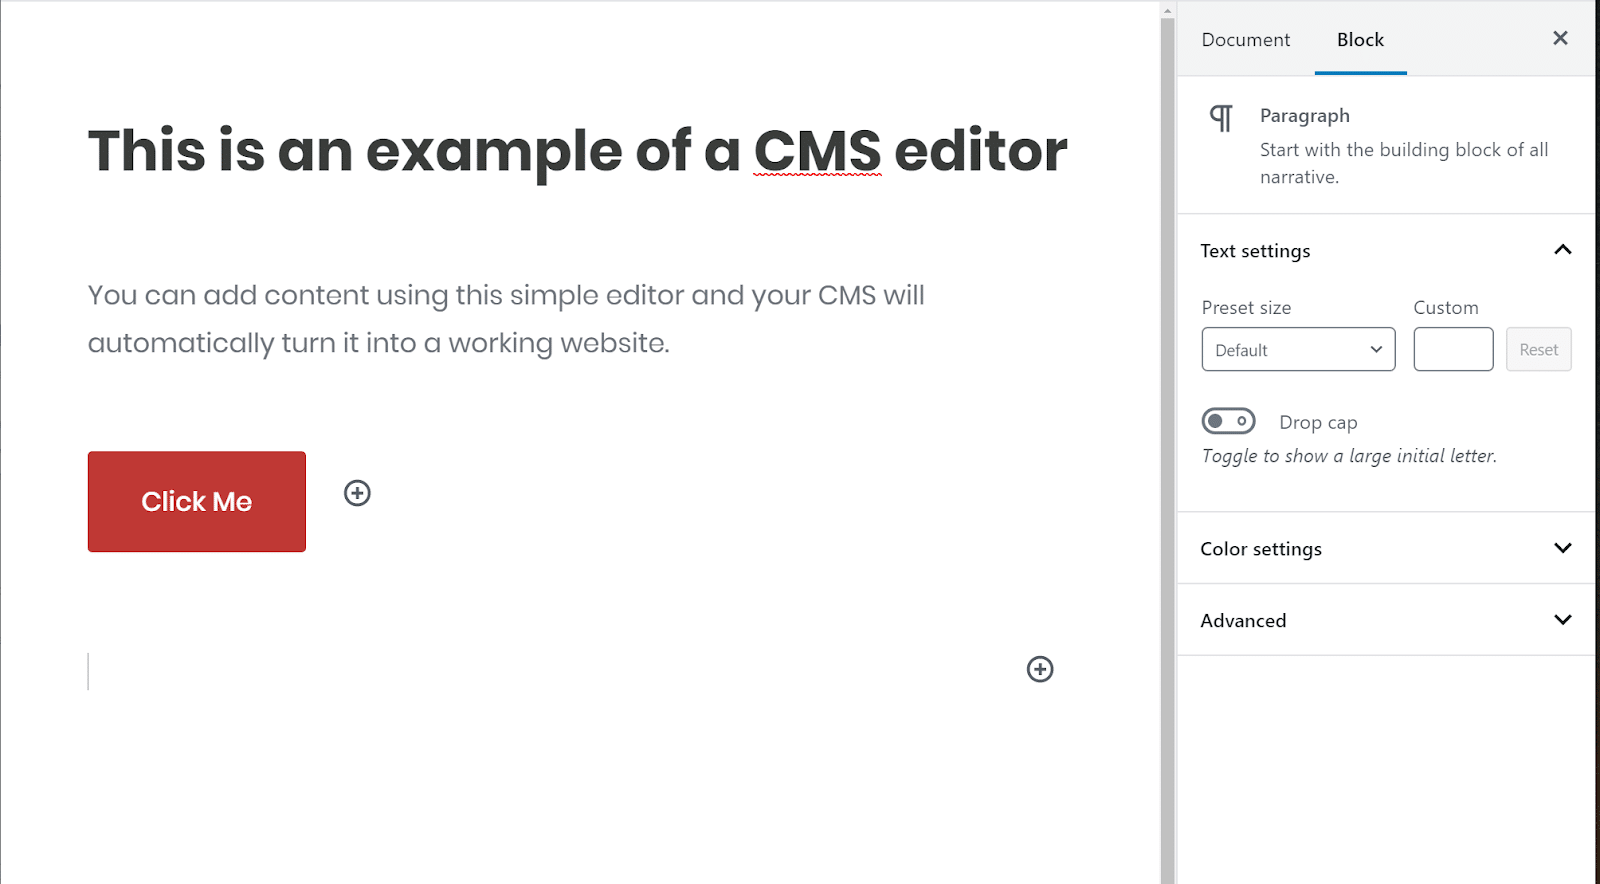 cms editor example